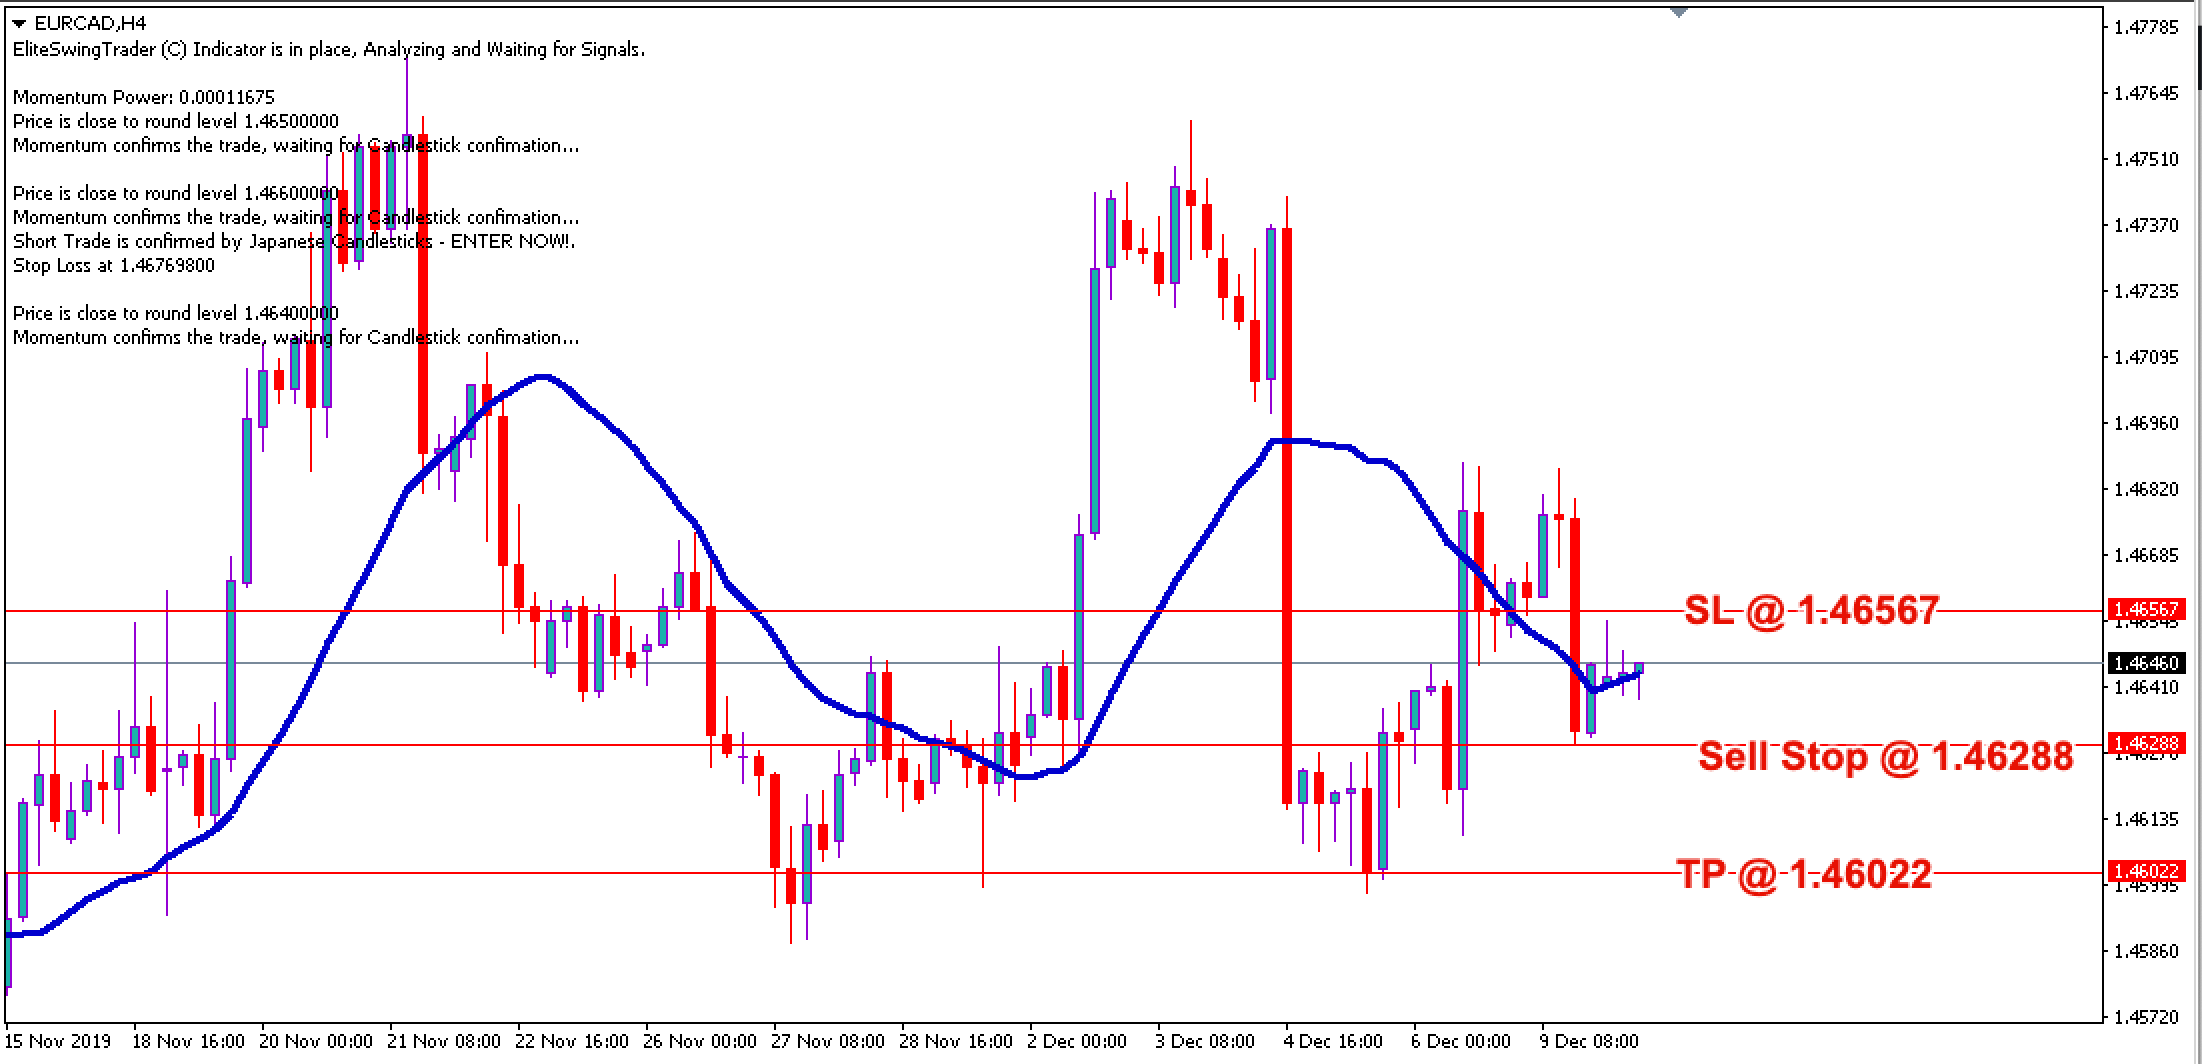 EURCAD Daily Price Forecast – 10th Dec 2019